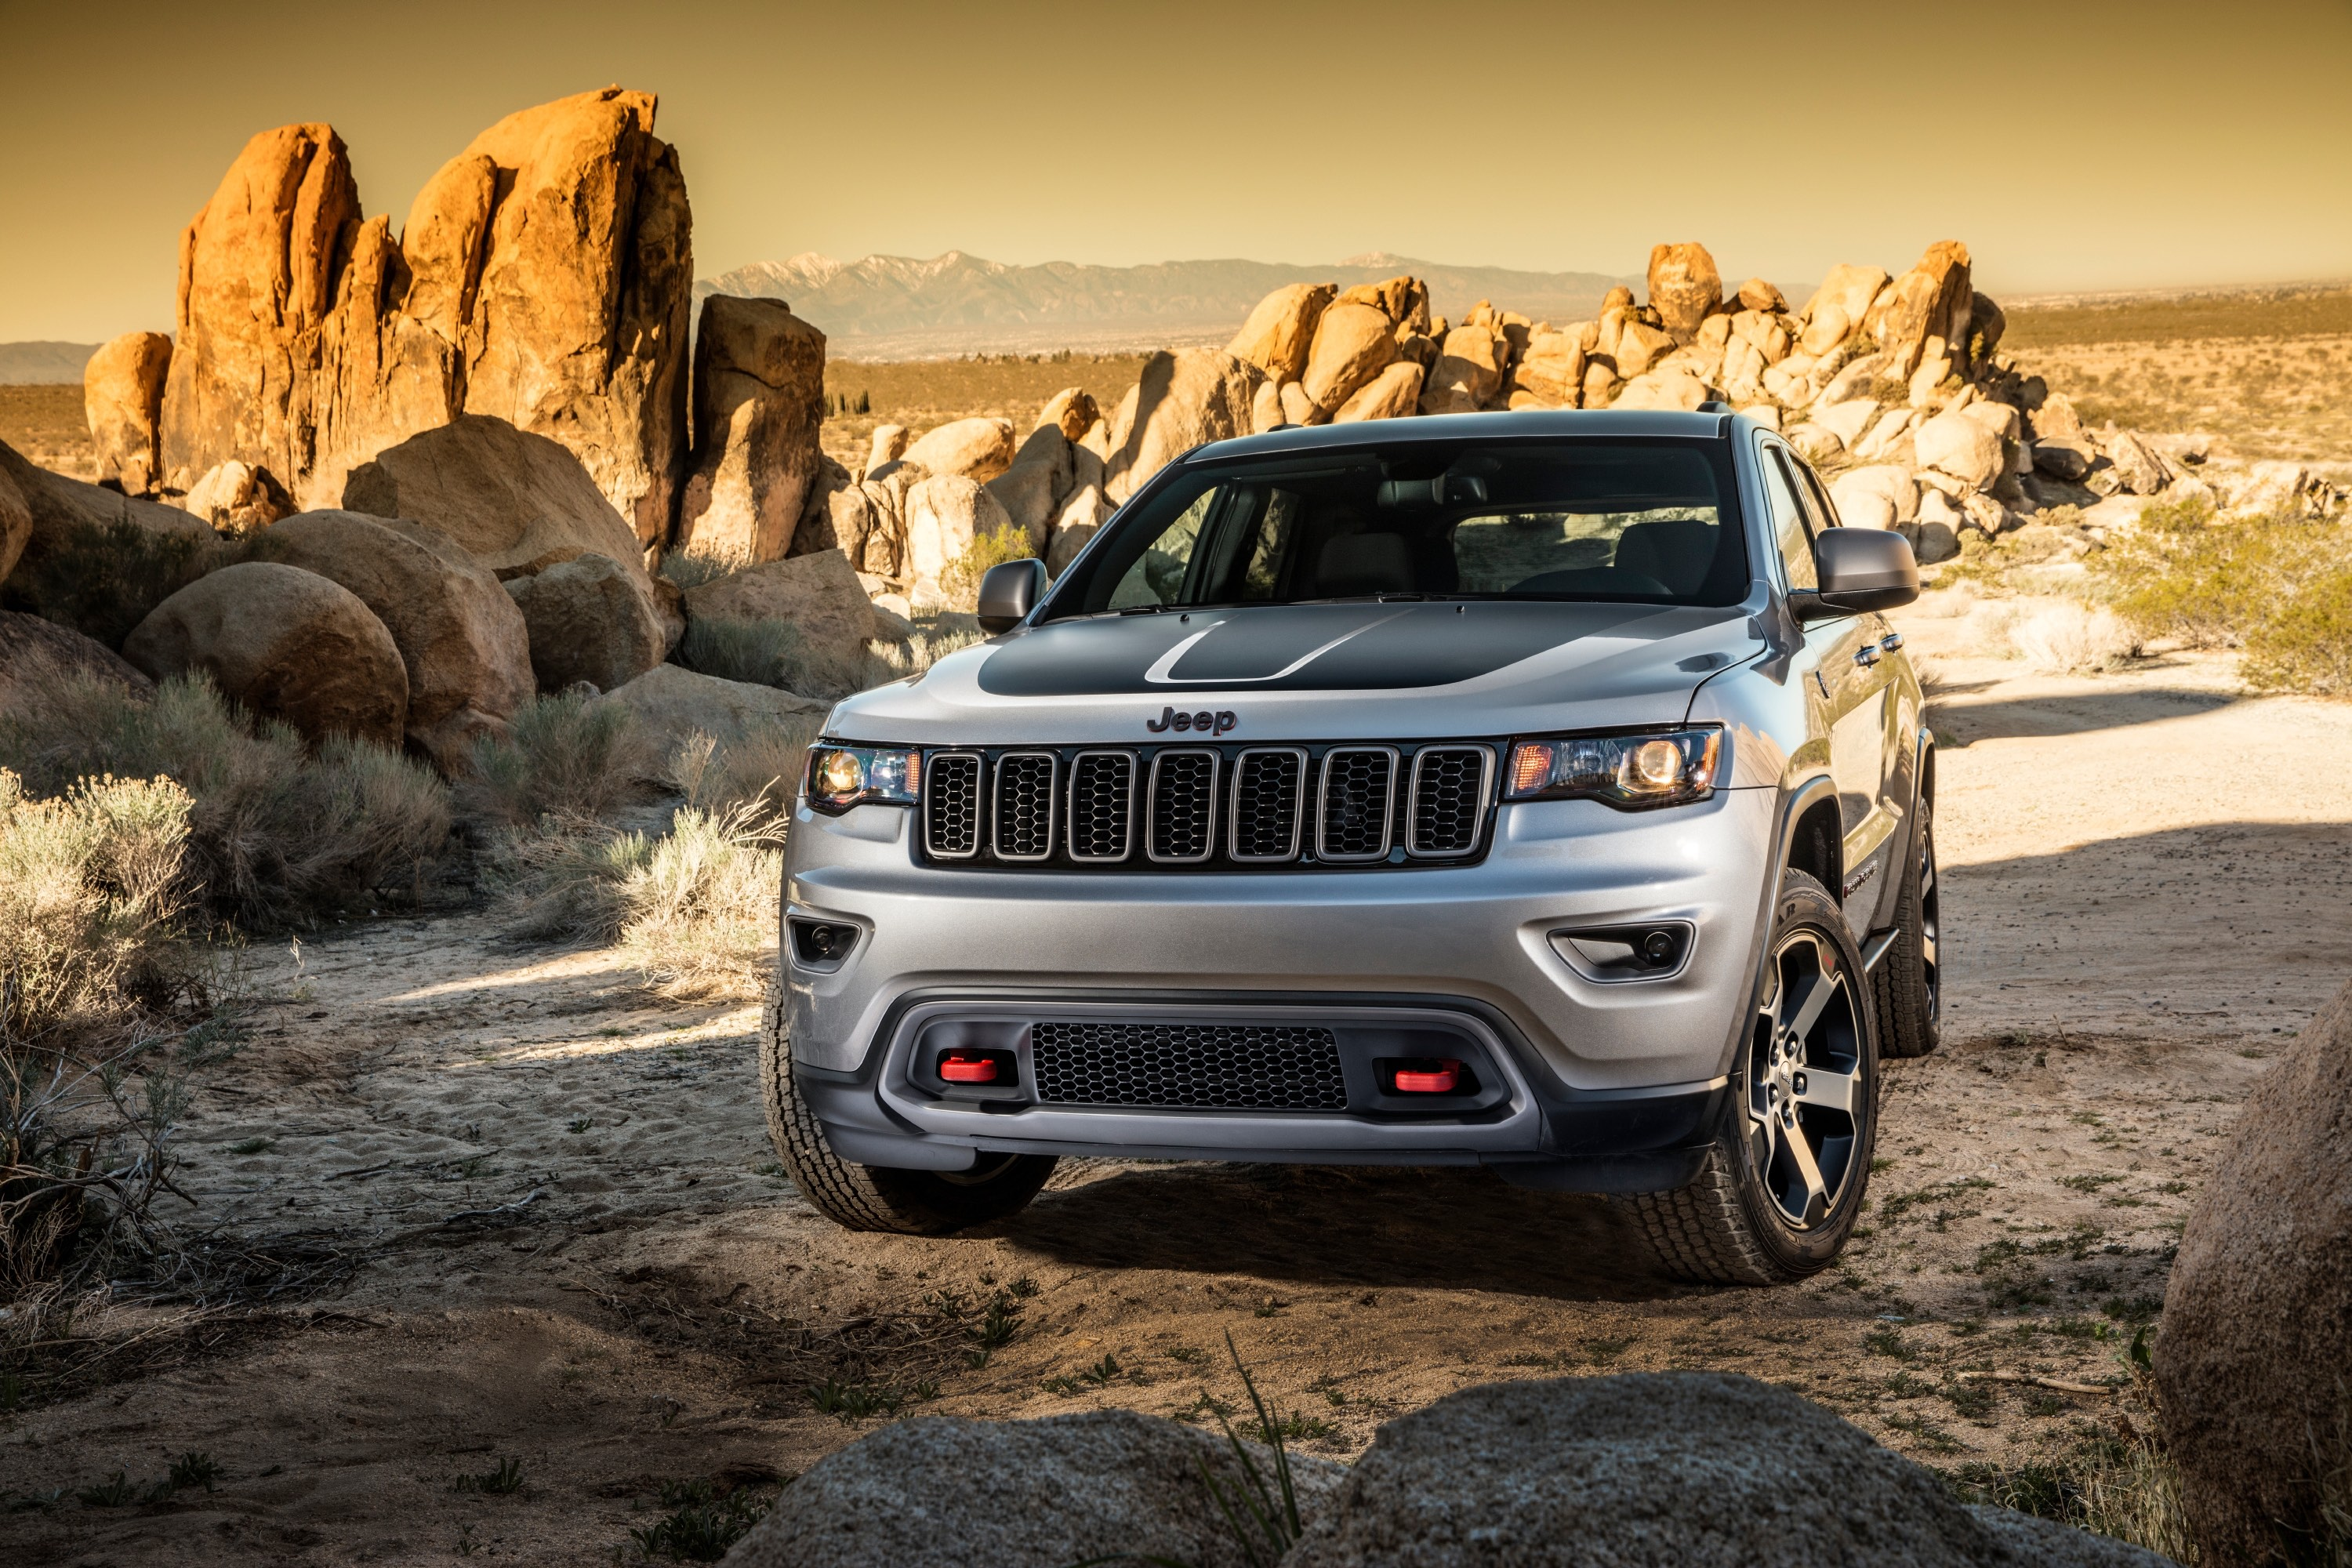 cherokee grand car jeep redesign concept review and price